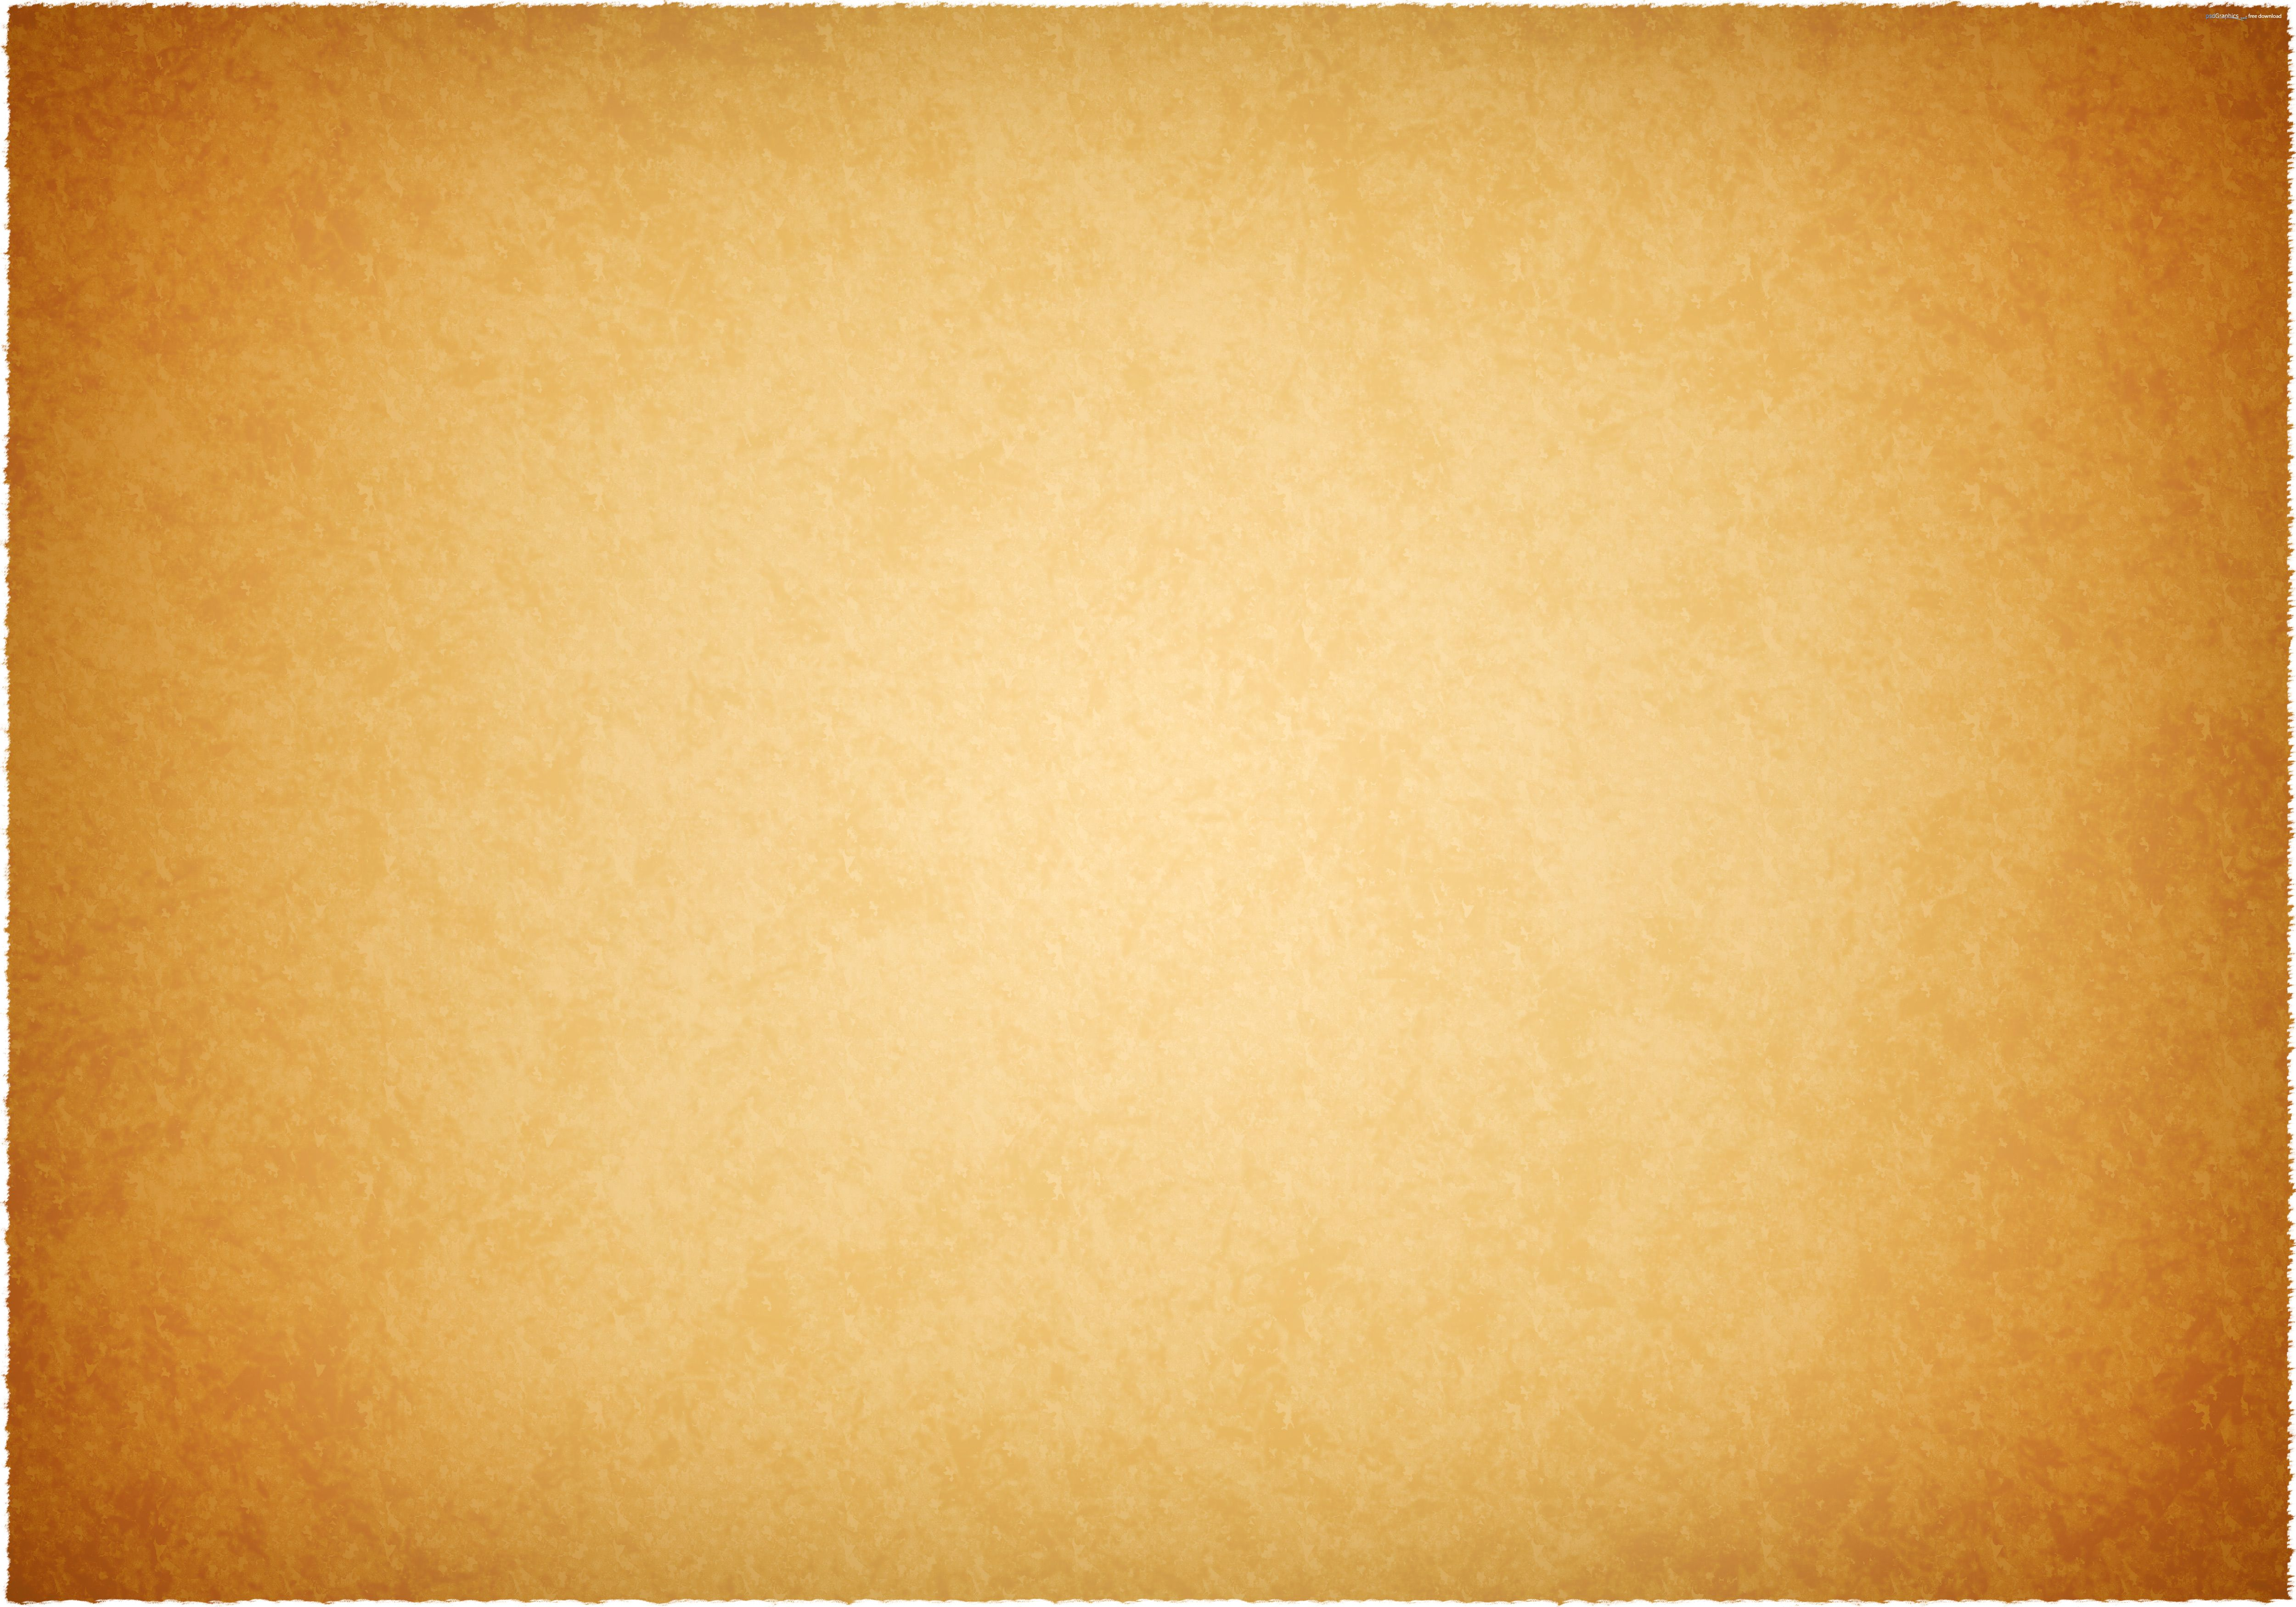 old yellow map backgrounds | Old paper texture with a rough edges ...